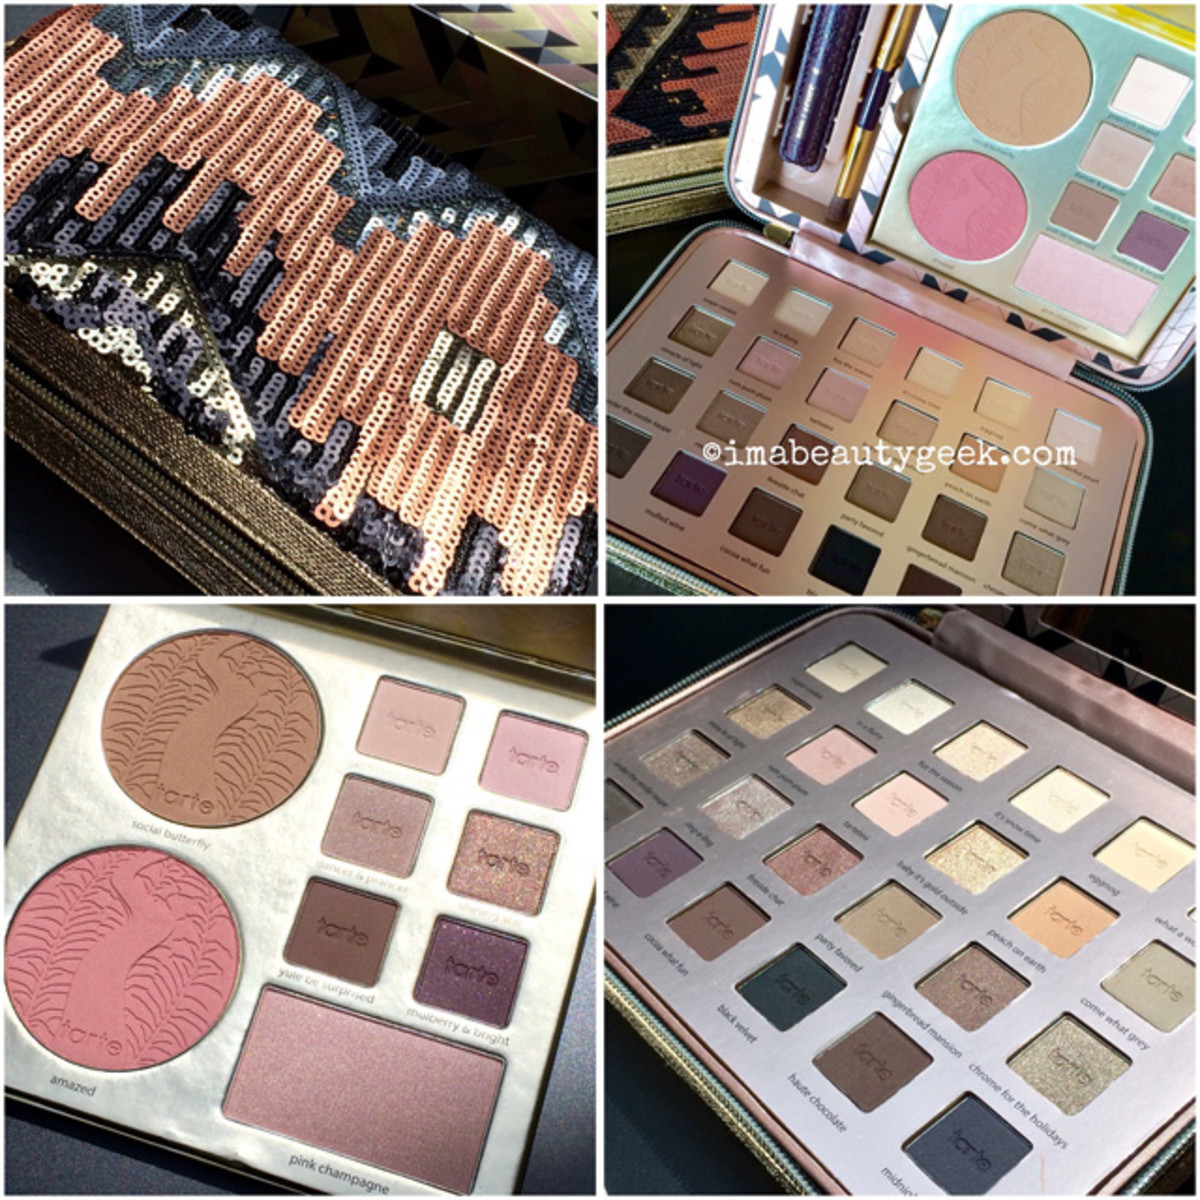 tarte holiday 2015 Light of the Party comp image